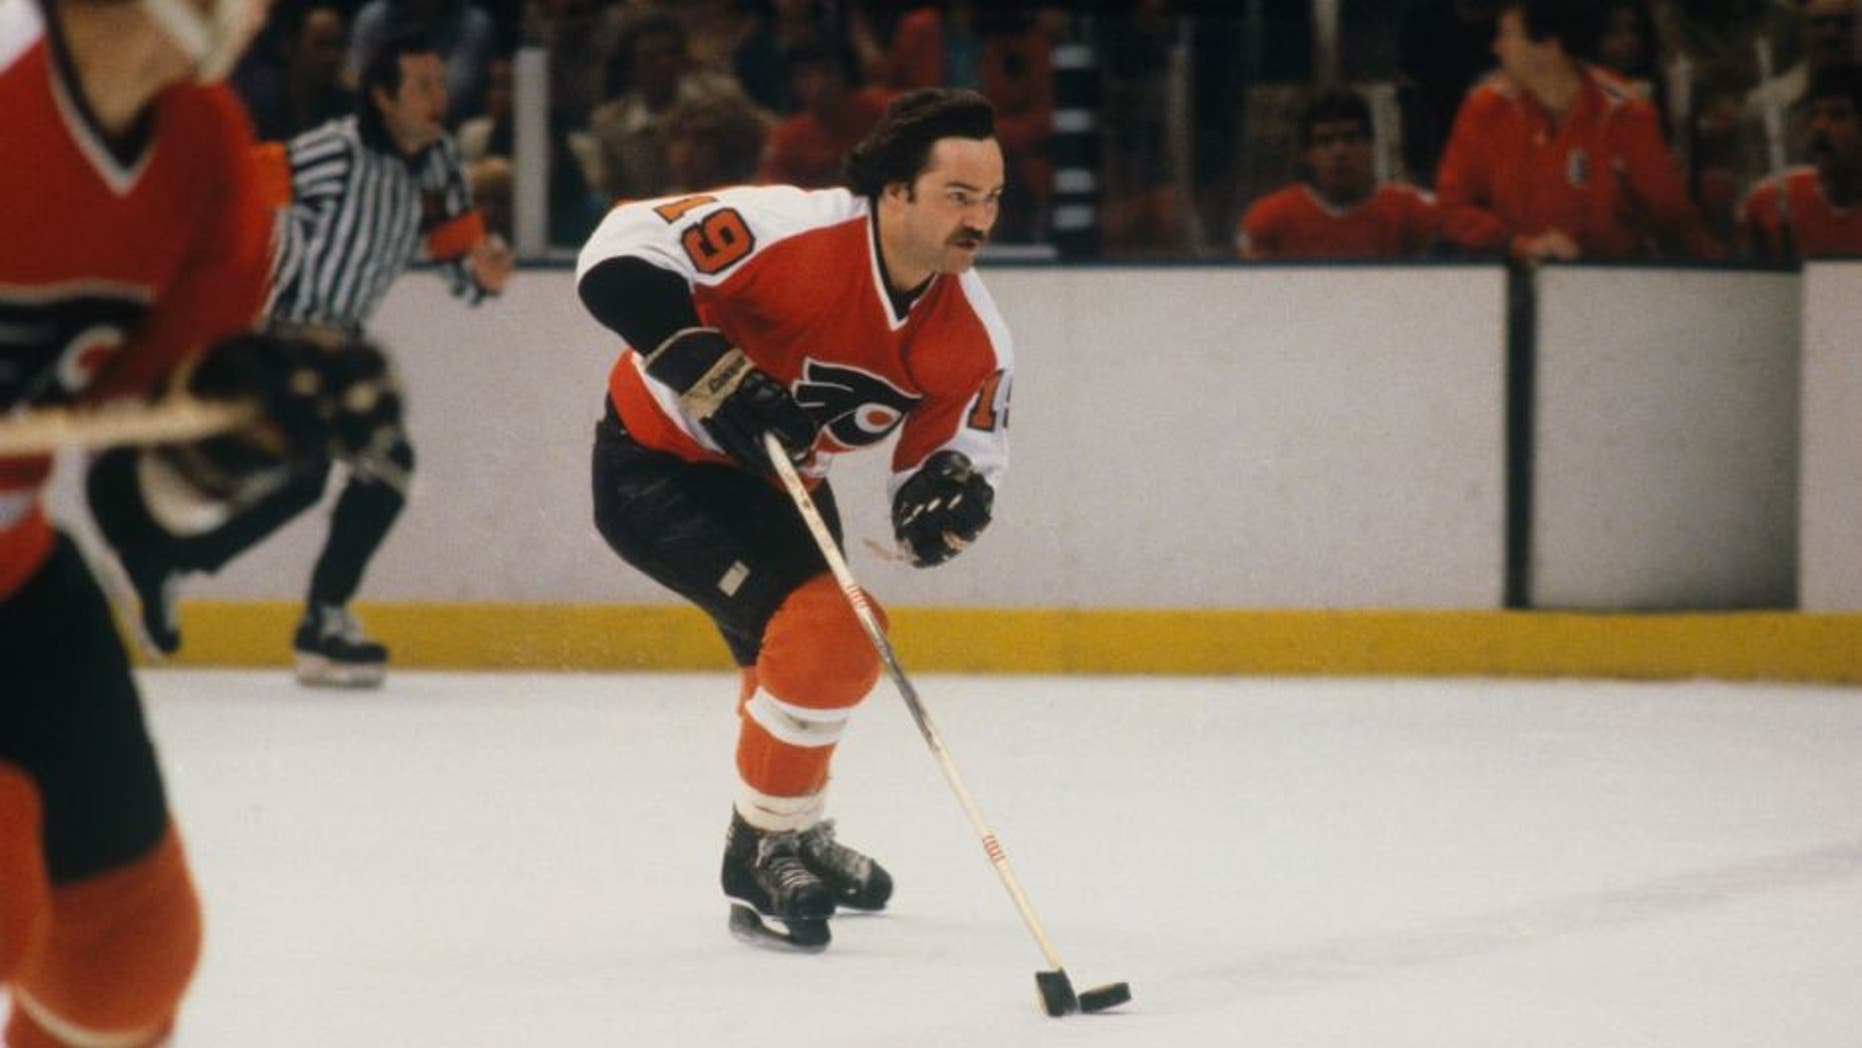 1980: Philadelphia Flyers' Rick MacLeish #19 skates with the puck. (Photo by Focus on Sport/Getty Images) *** Local Caption *** Rick MacLeish